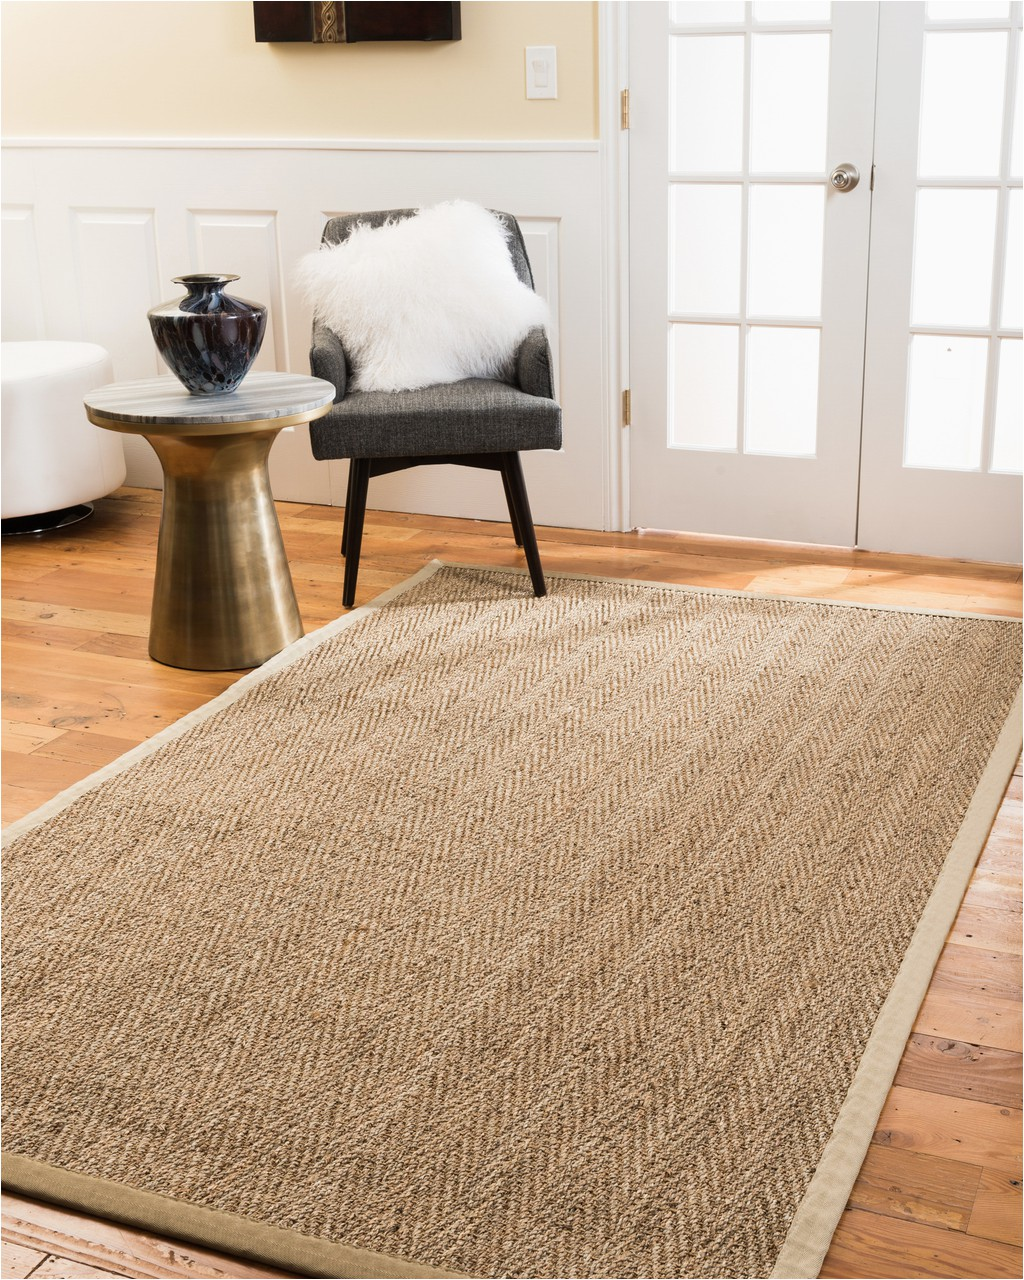 Non toxic Cotton area Rugs Non toxic Rugs Natural area Rugs Four Seasons Seagrass Rug